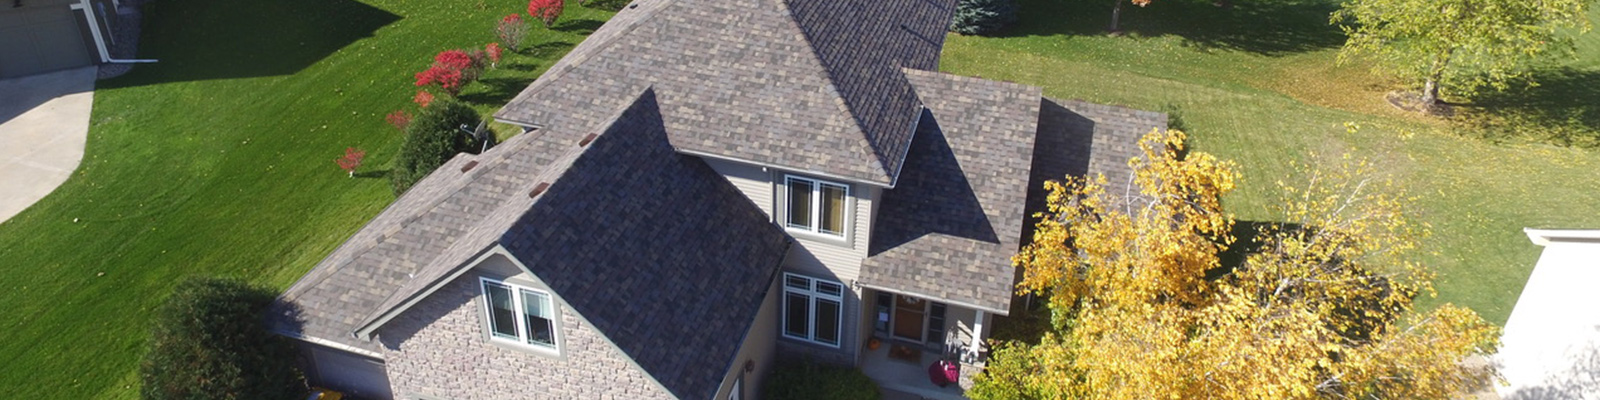 House with new Residential Roof Replacement in Bloomington MN